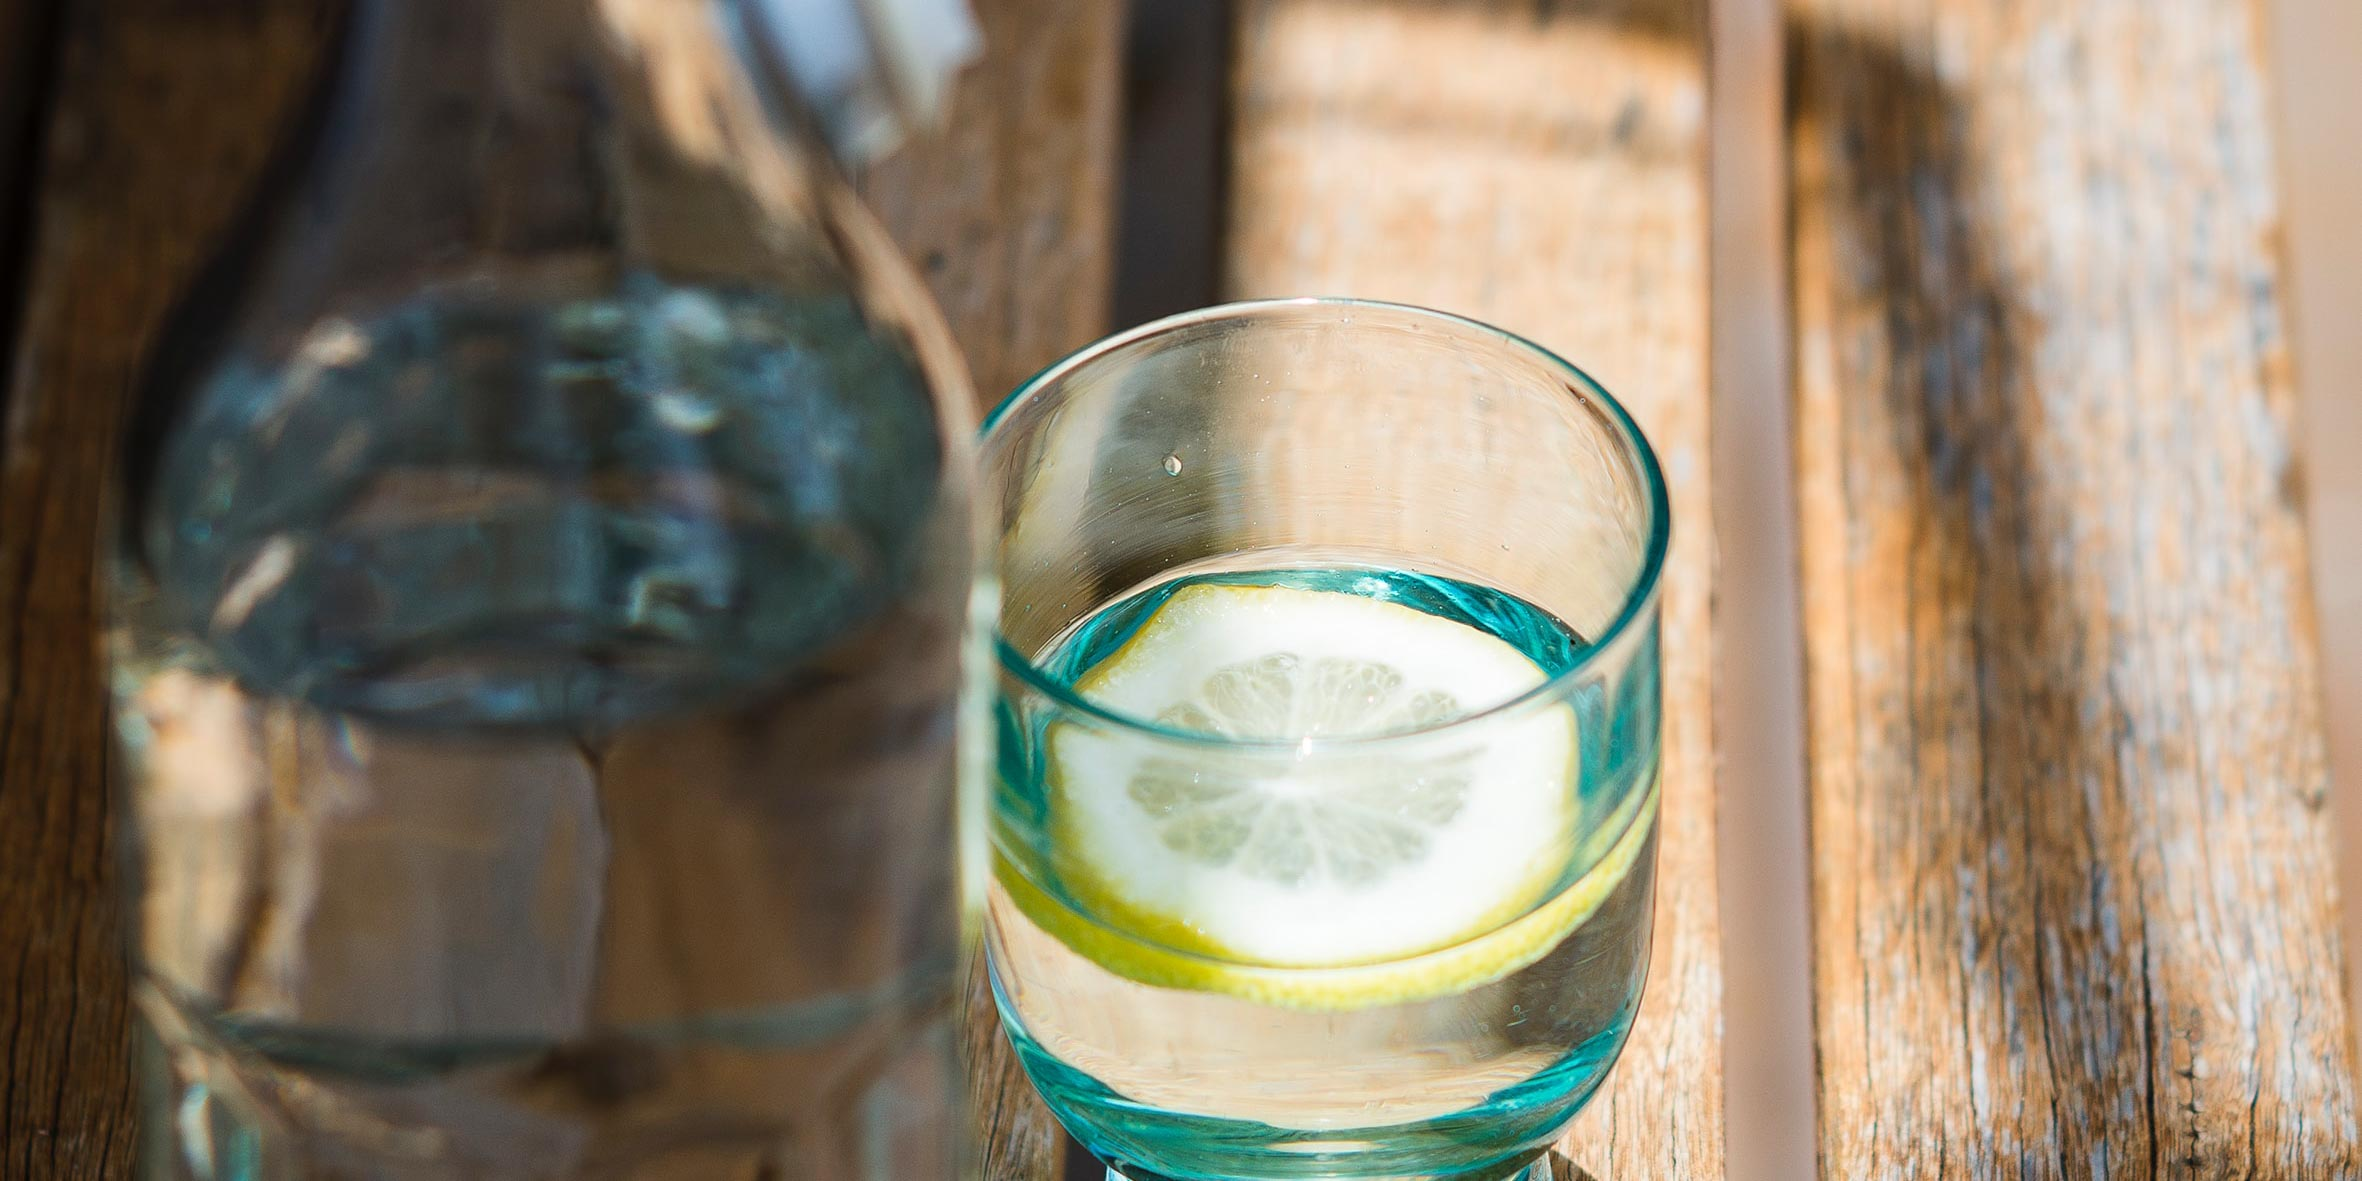 Glass of water with lemon vitamin c on a wooden table